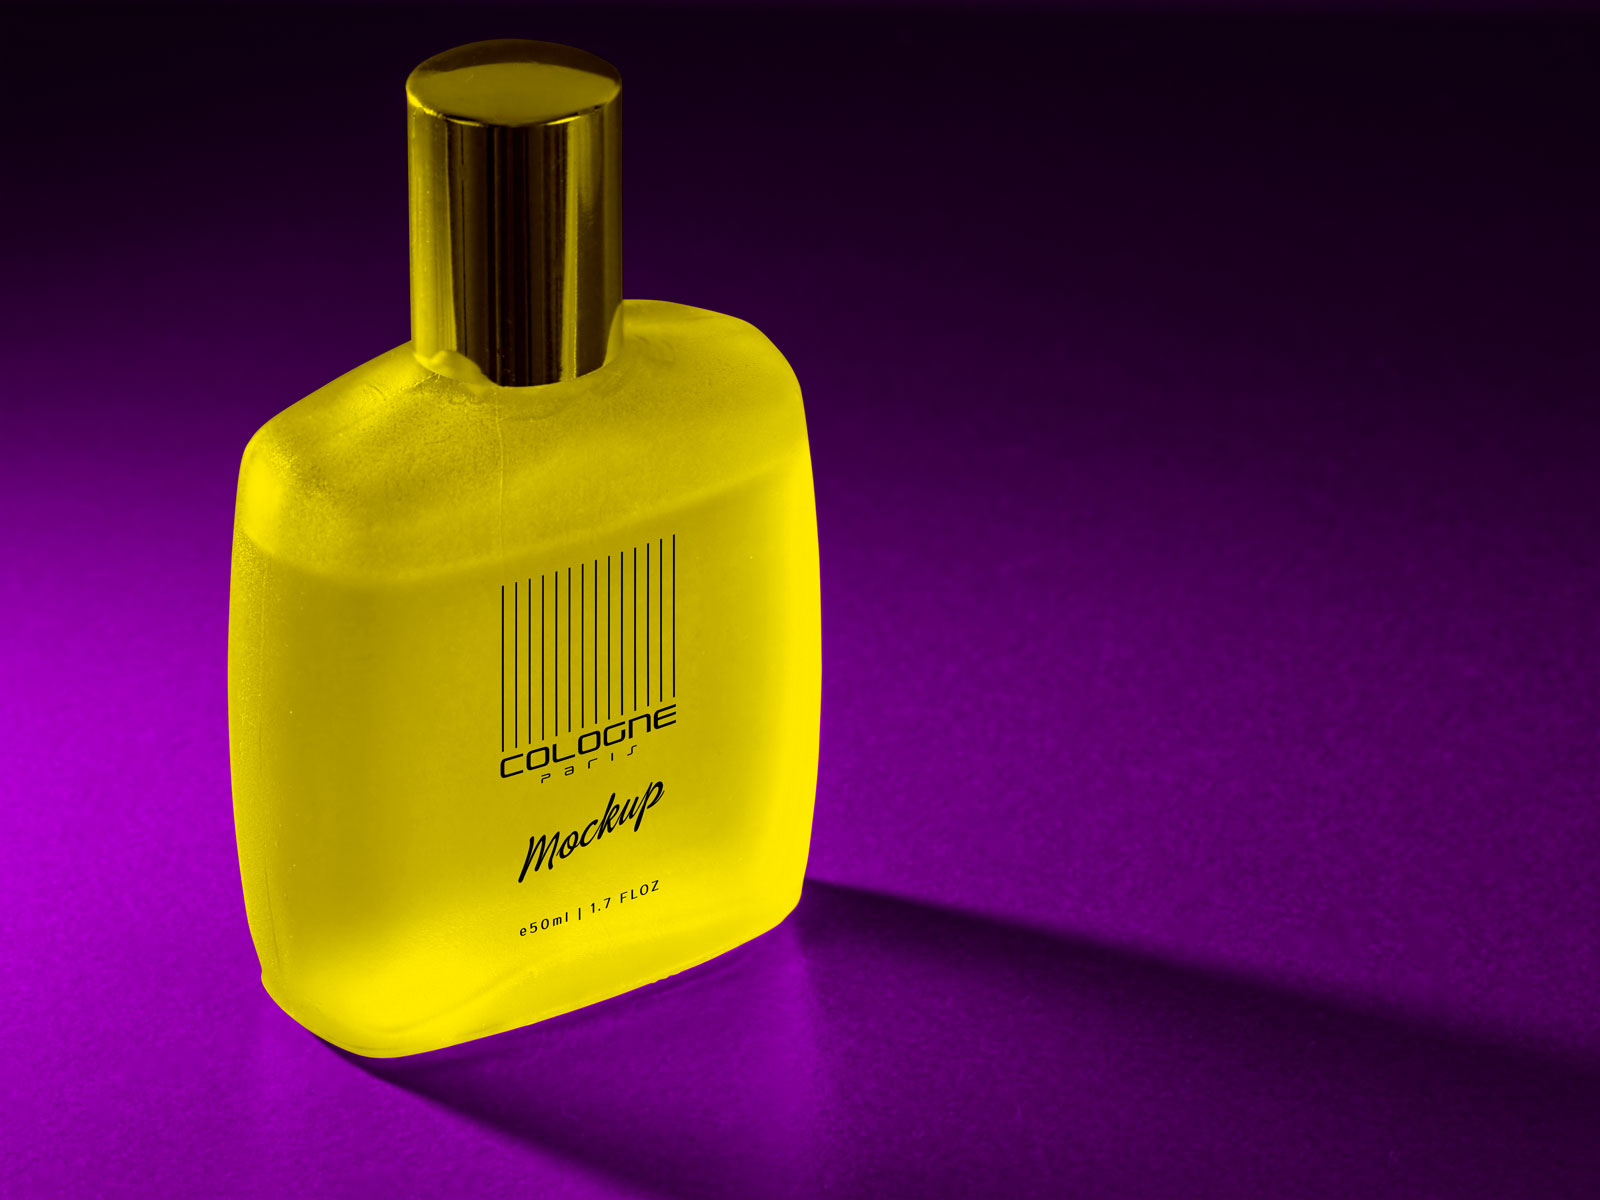 Free-Frosted-Perfume-Bottle-Mockup-PSD-File--3